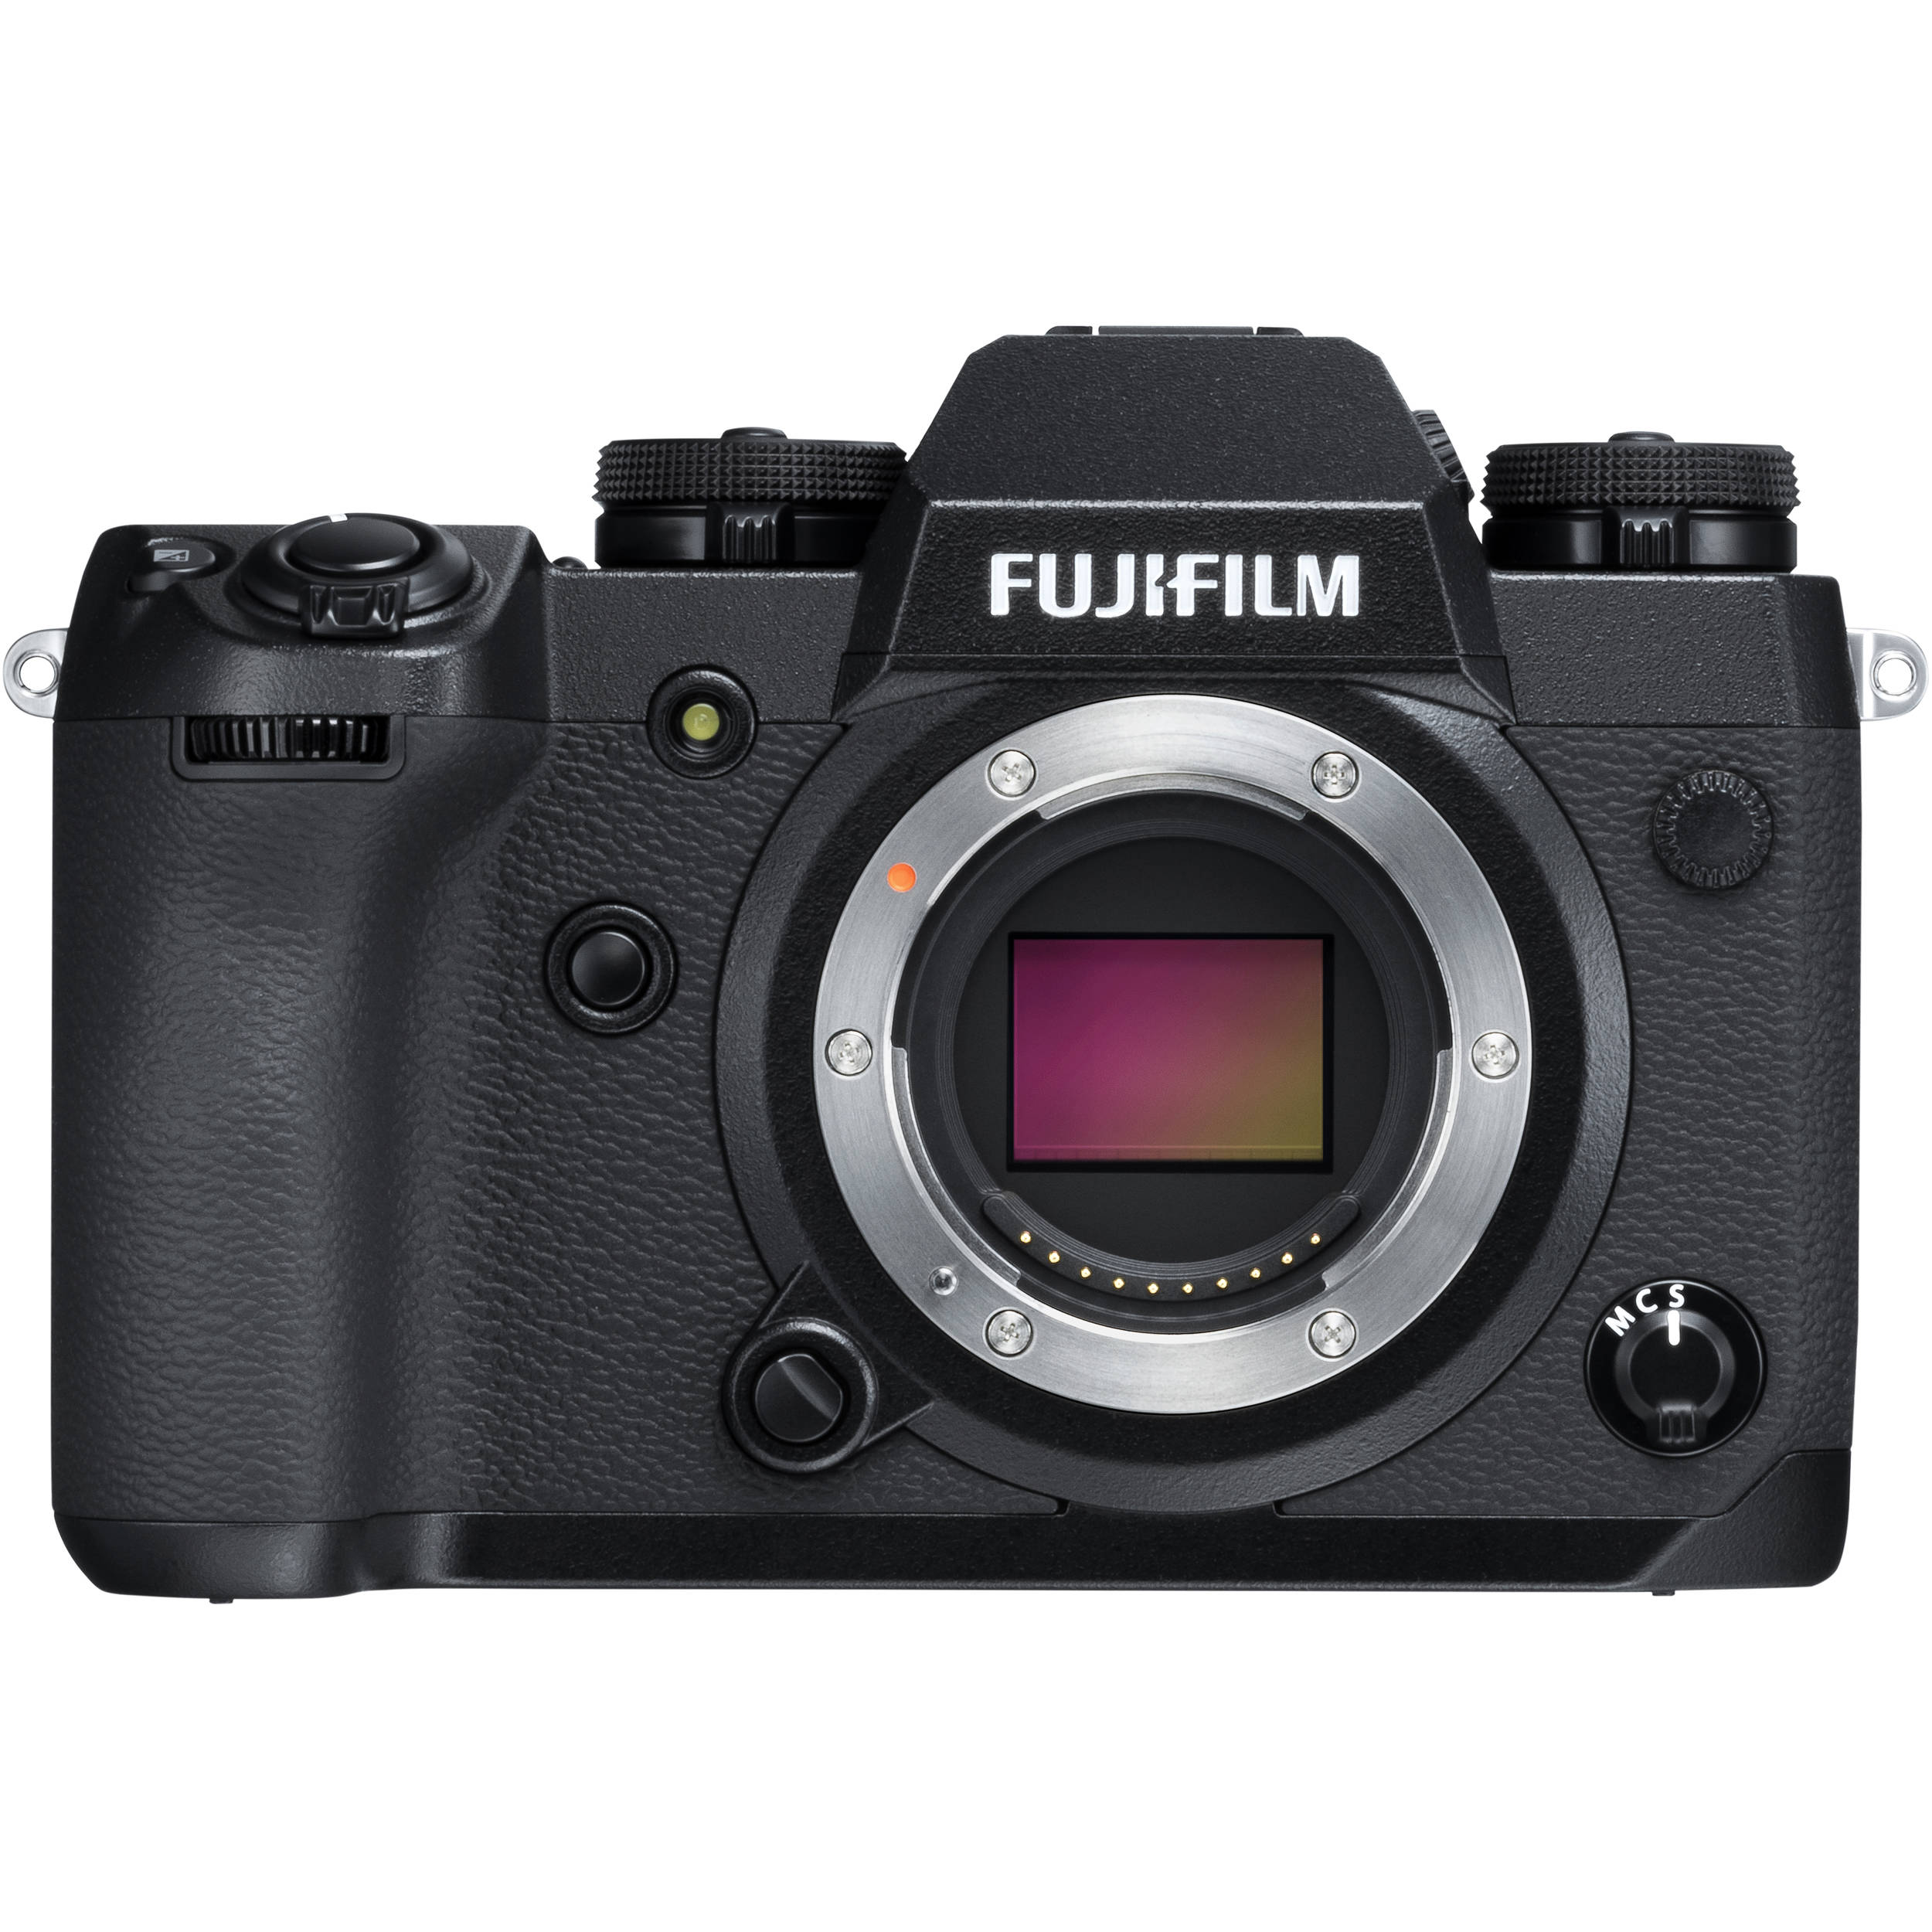 Fuji X Wedding Photography: Fujifilm X-H1 Mirrorless Digital Camera (XH1 Camera Body